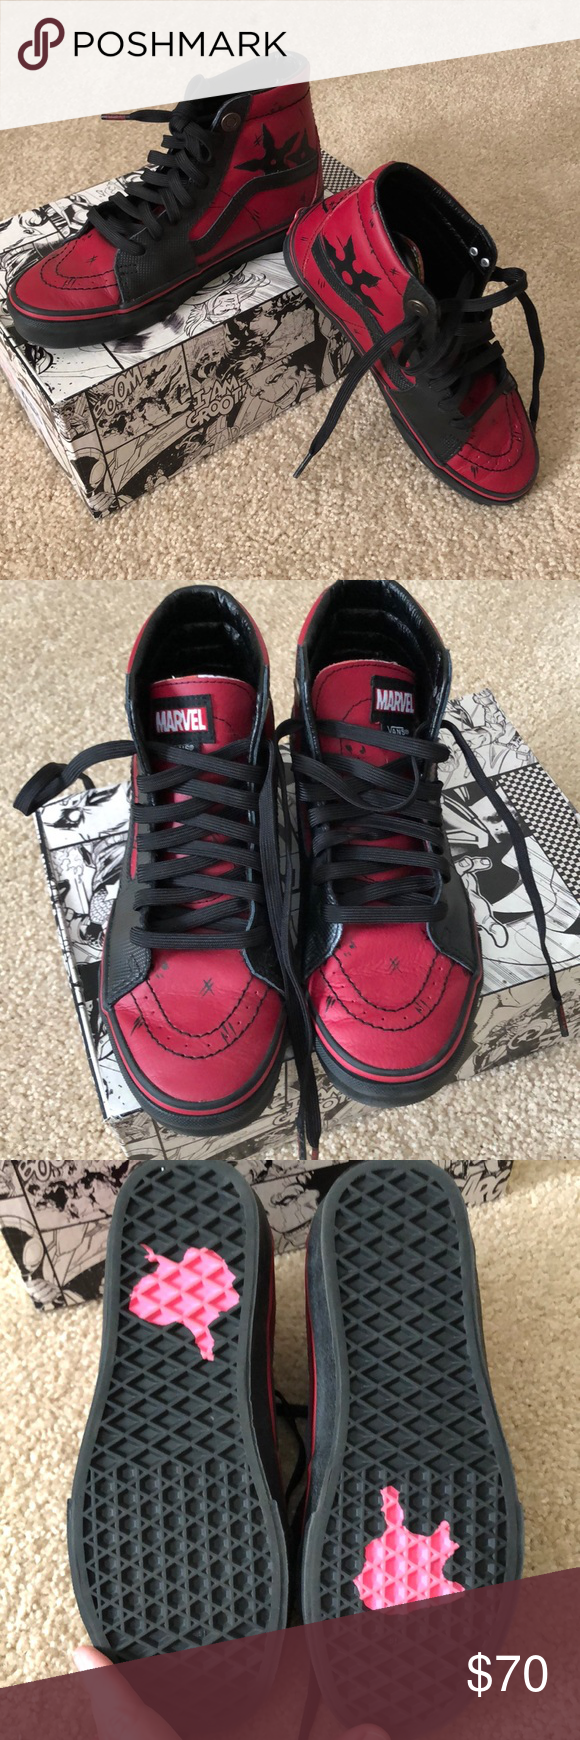 Vans Marvel Deadpool SK8-Hi size 5.5 7 women s These were worn just a few  times by my son and now they don t fit 34a4b9f2c